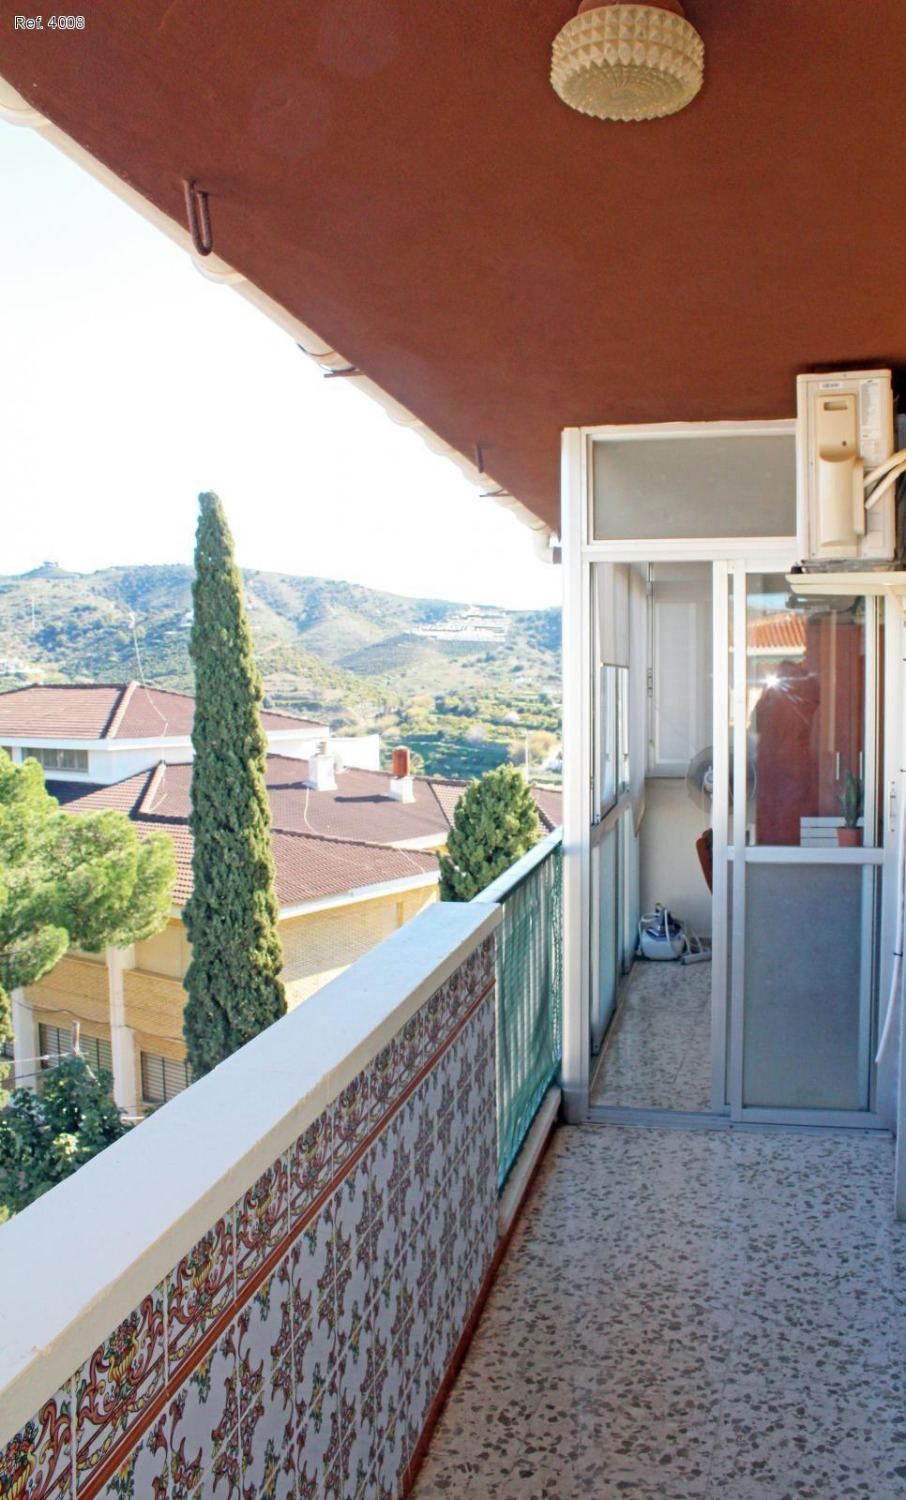 Spacious apartment located in La Rabitilla